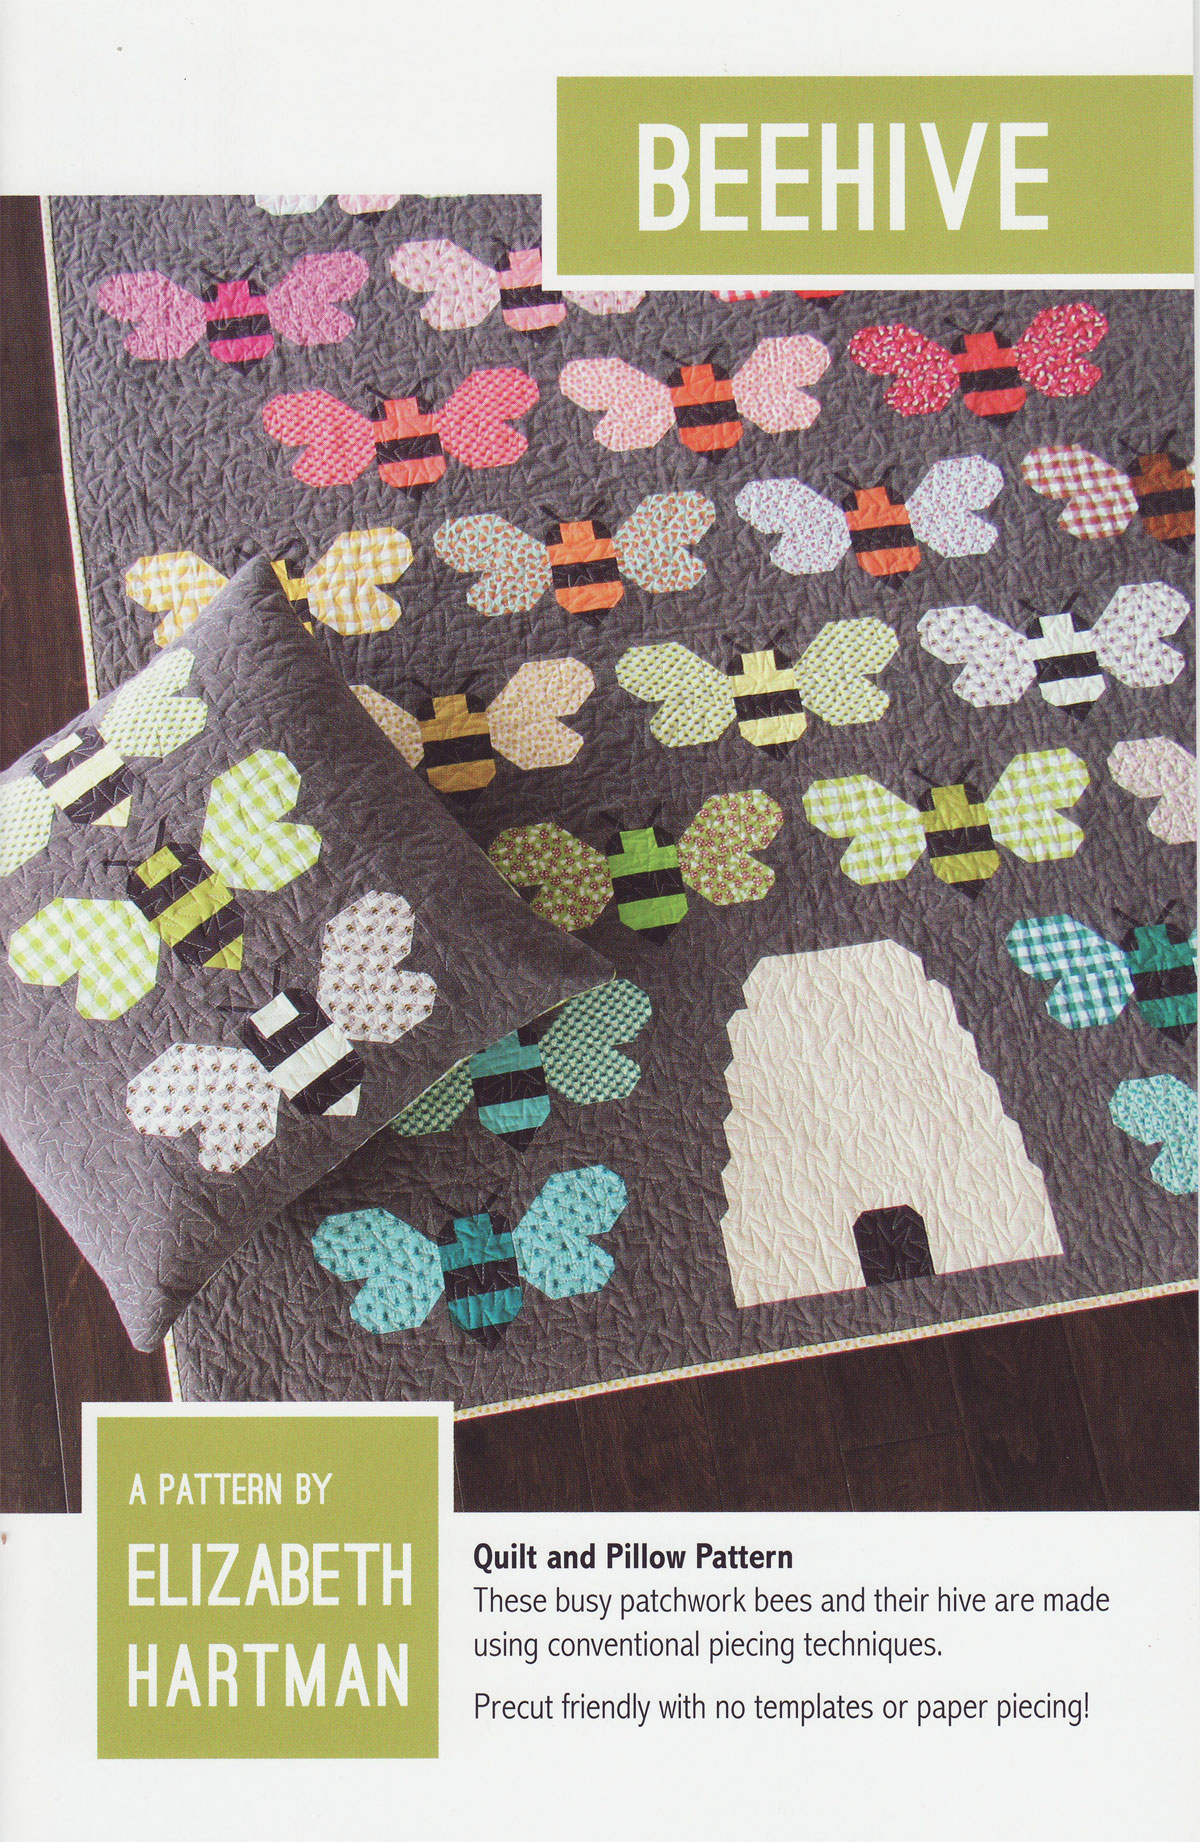 Beehive-quilt-sewing-pattern-Elizabeth-Hartman-front